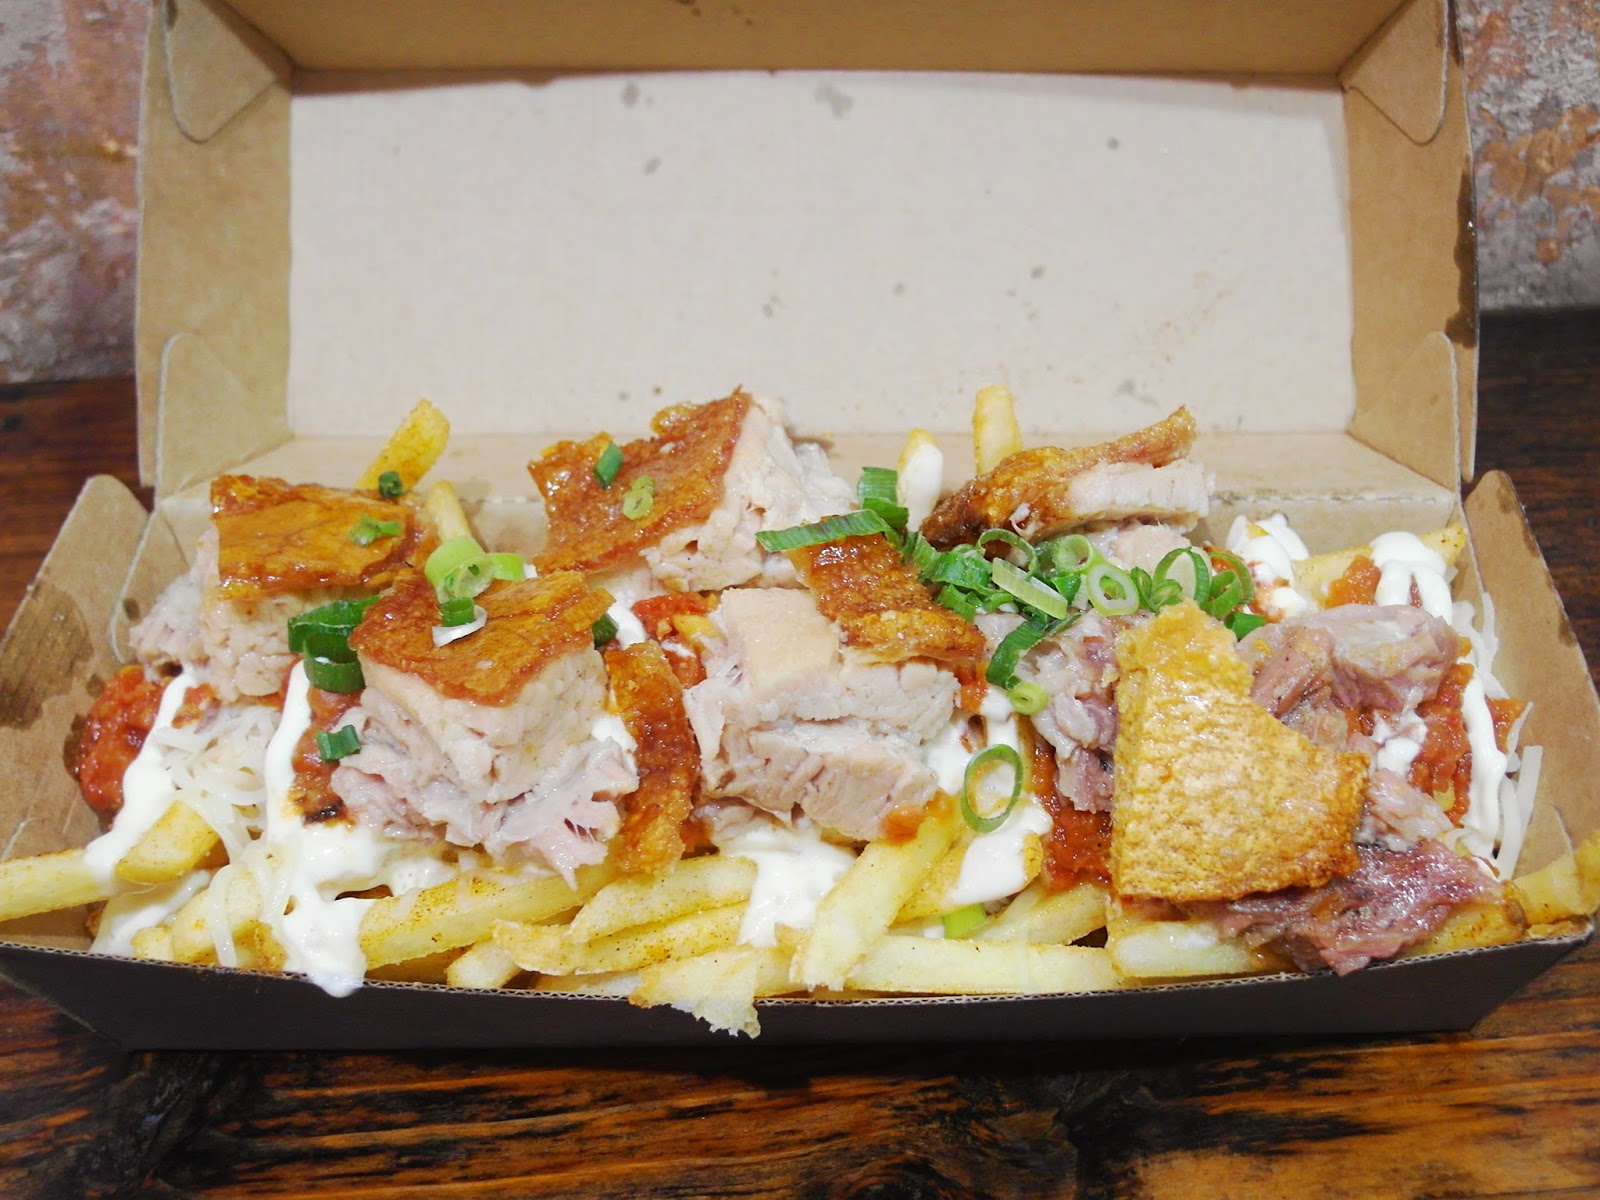 crispy pork nacho fries ($12.00):